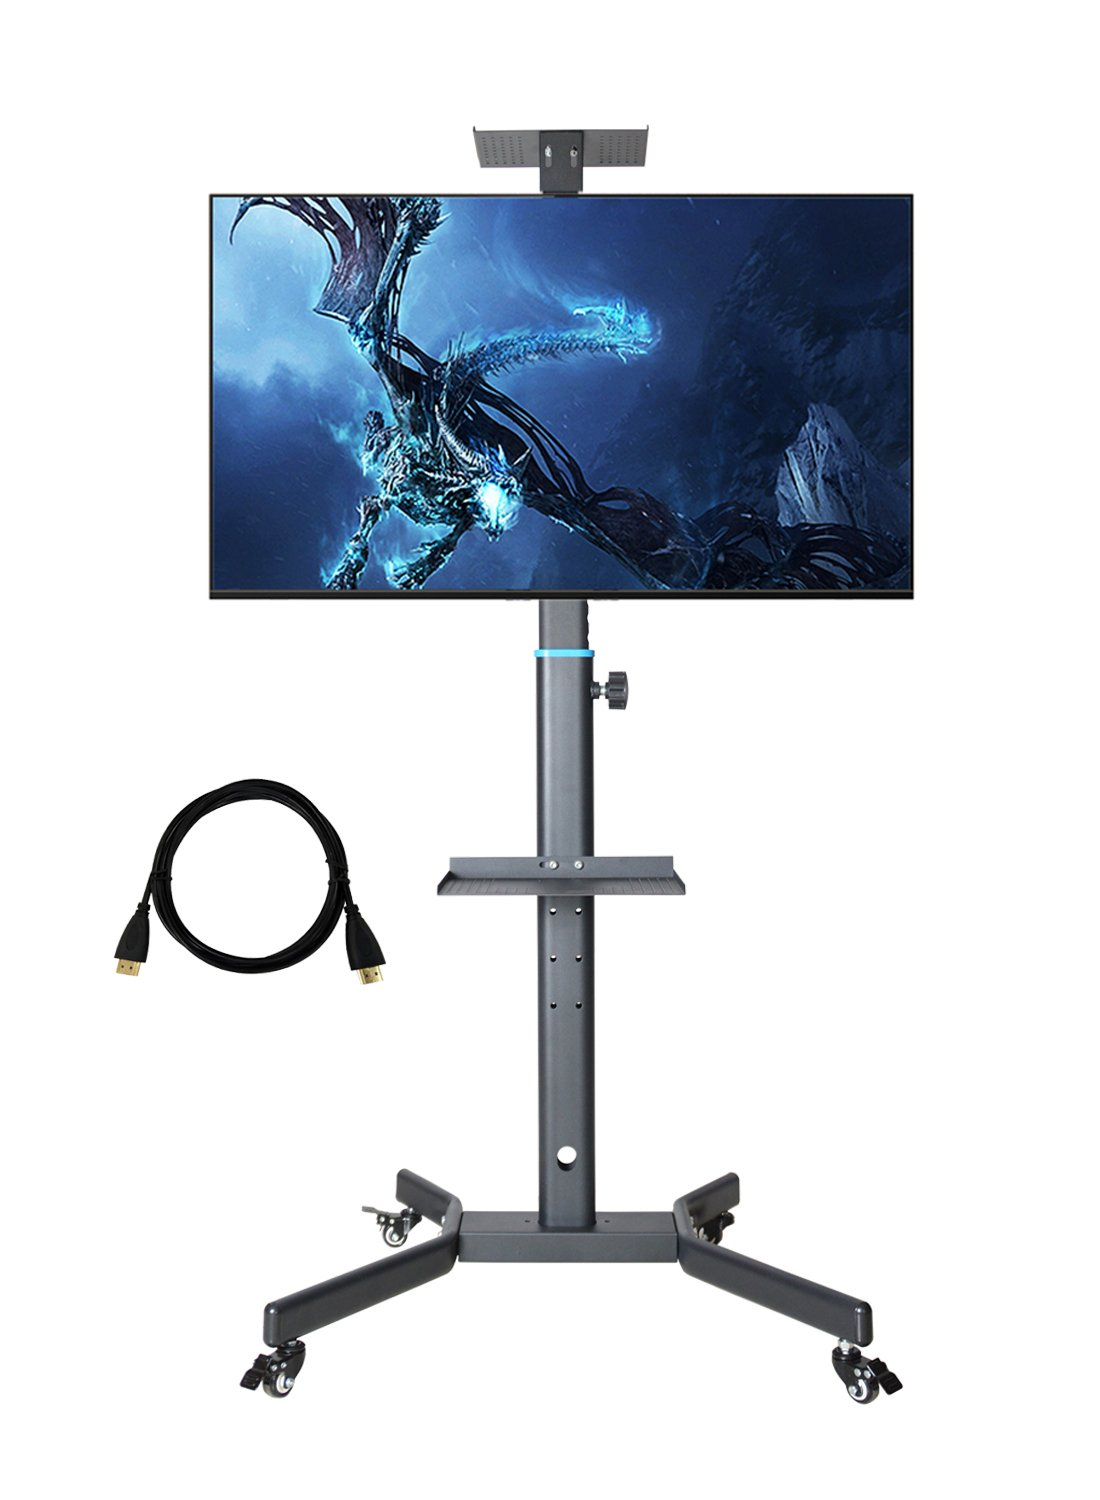 CNYF PTS008 Mobile TV Cart for LCD LED Plasma Flat Screen Panel Trolley Floor Stand with Locking Wheels | Fits 32'' to 55'' by CNYF